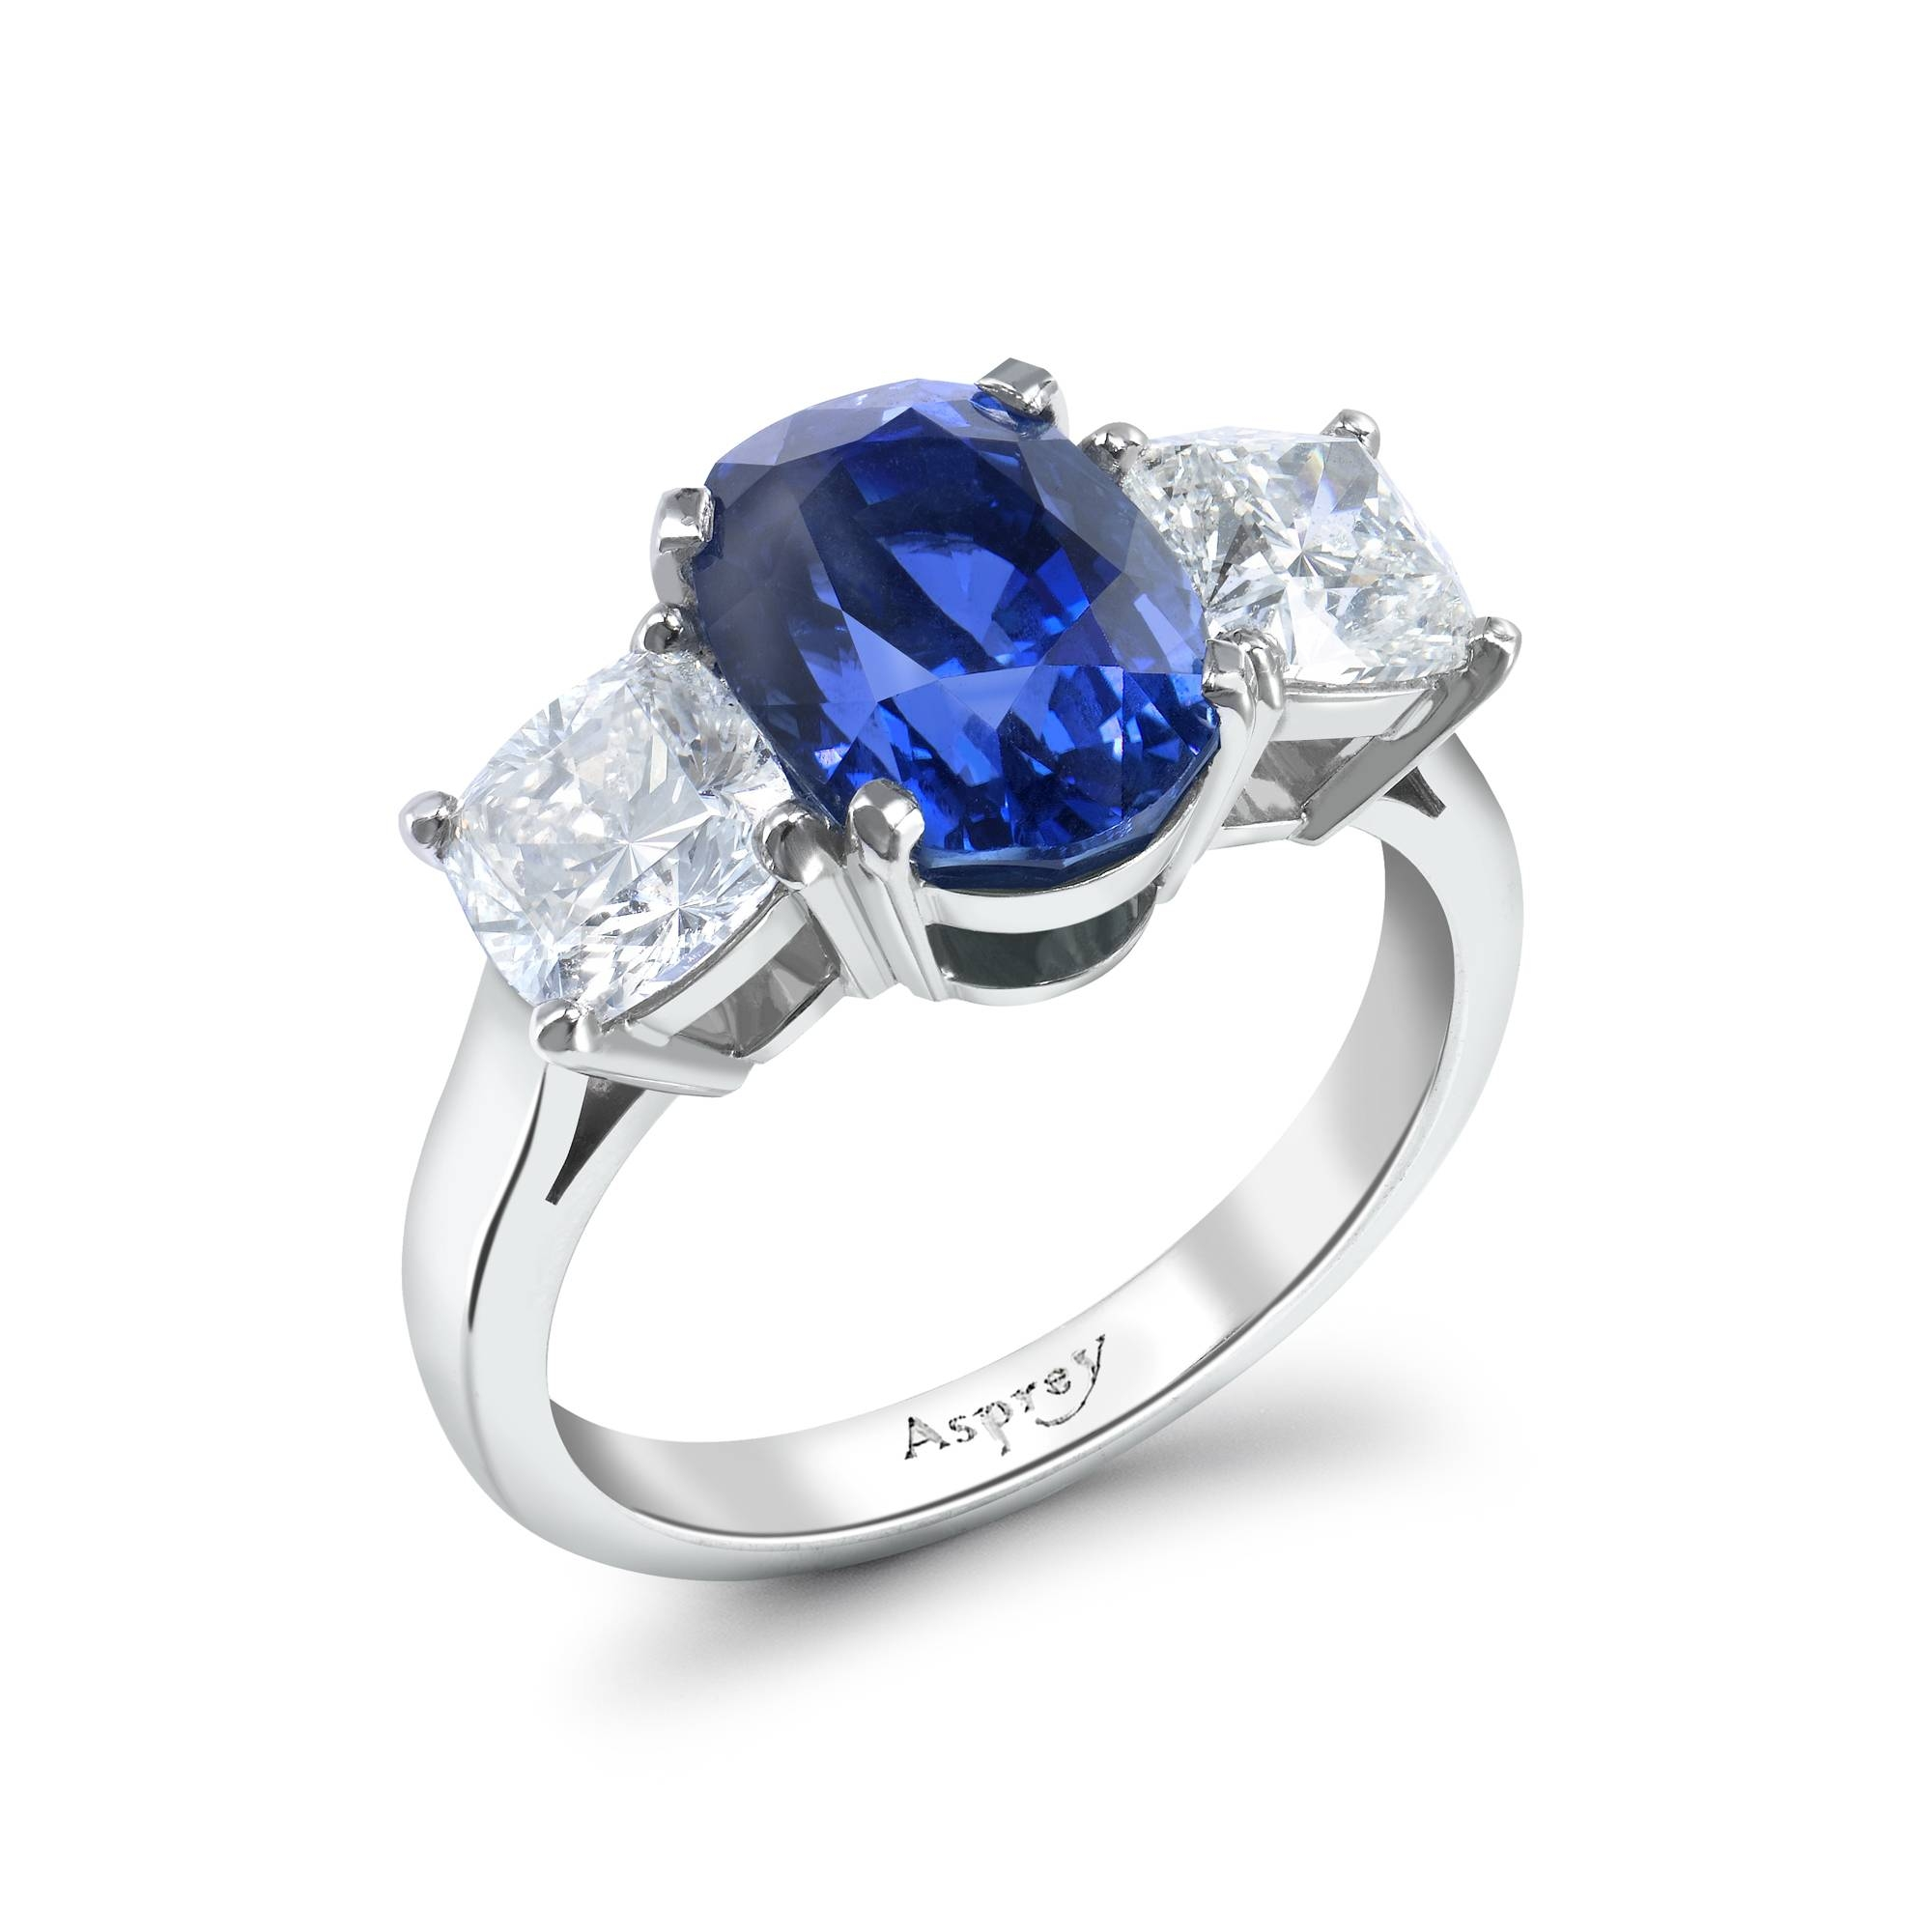 Engagement Rings : B Sbv Loveme Beautiful Engagement Ring Sapphire Throughout Diamond And Sapphire Rings Engagement Rings (Gallery 10 of 15)